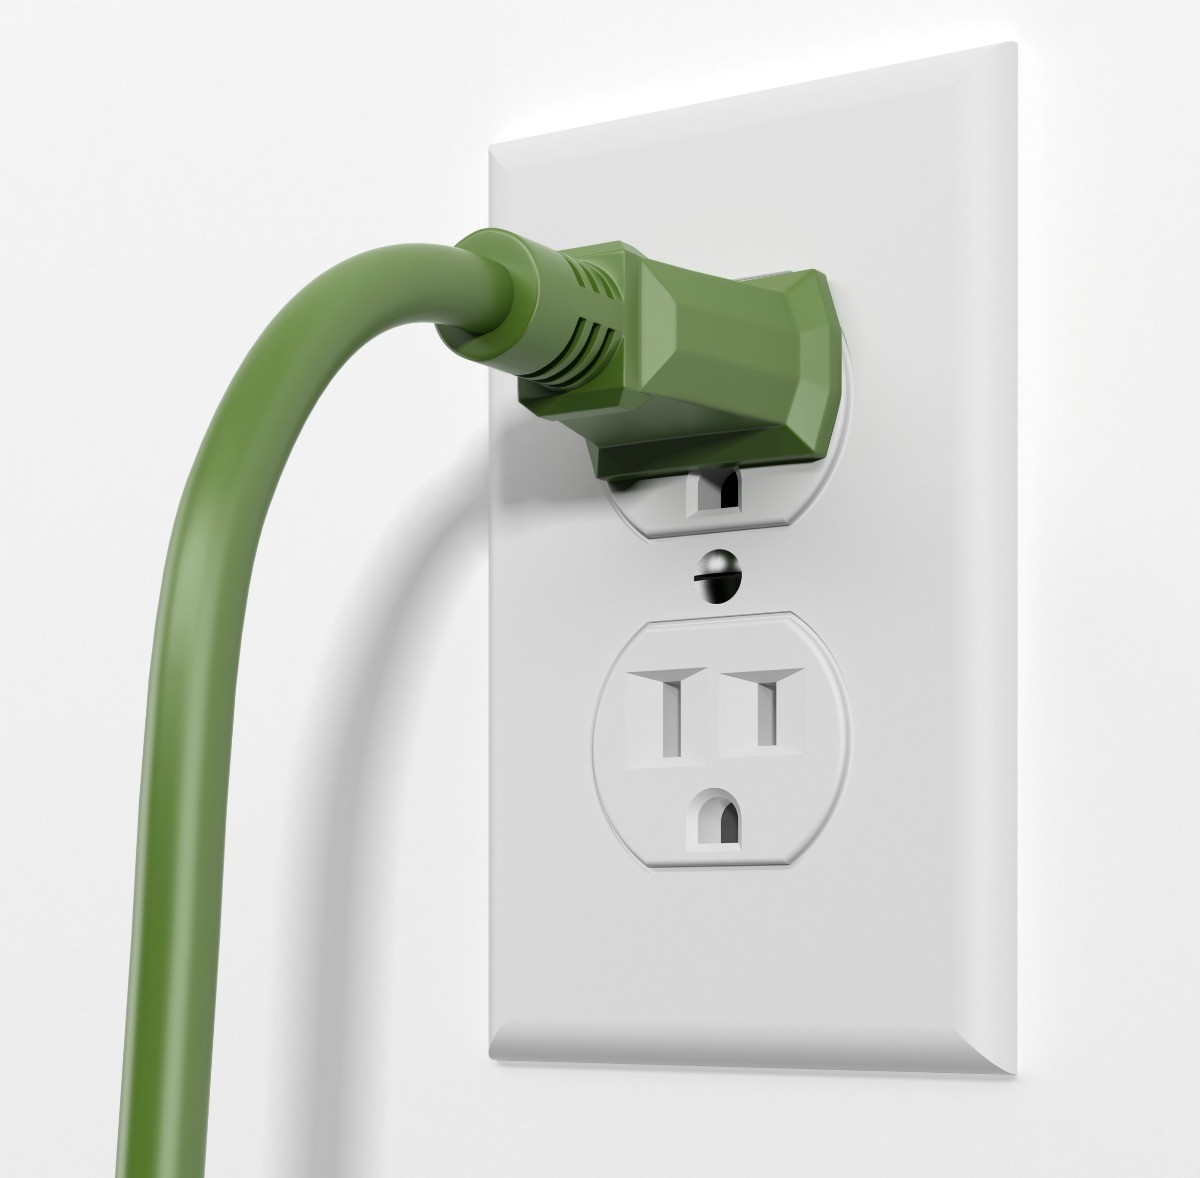 hight resolution of electrical outlet with a green cord plugged in